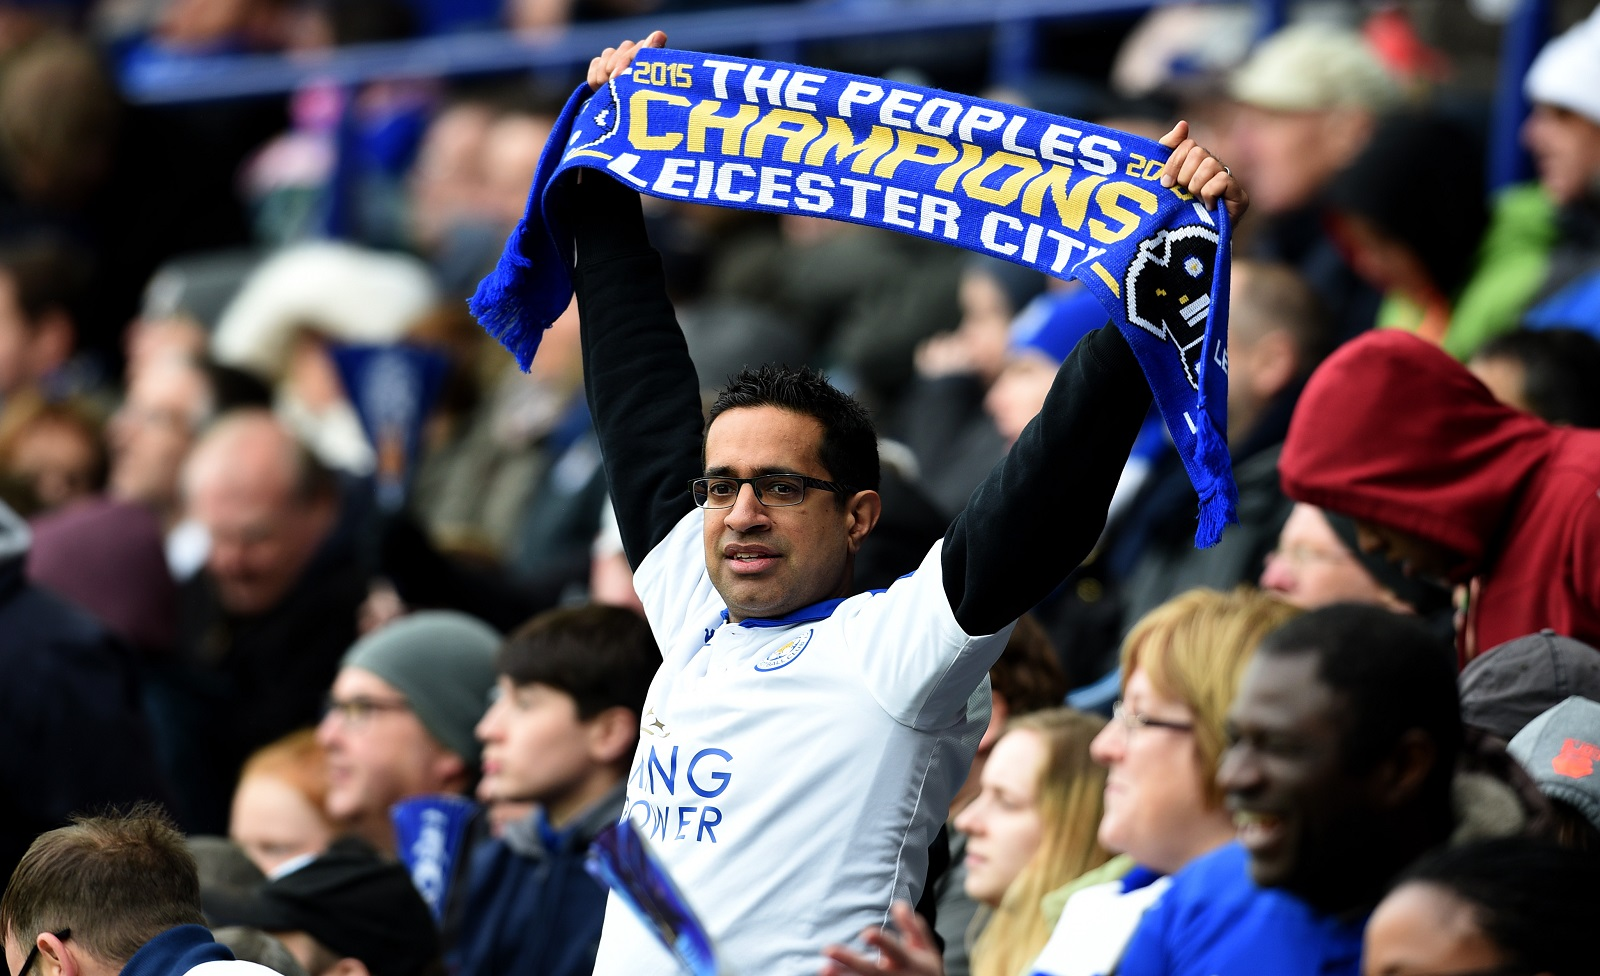 These days, Leicester supporters -- and English football fans in general -- are a little more relaxed than the 1980s-era of hooliganism. (Getty Images)